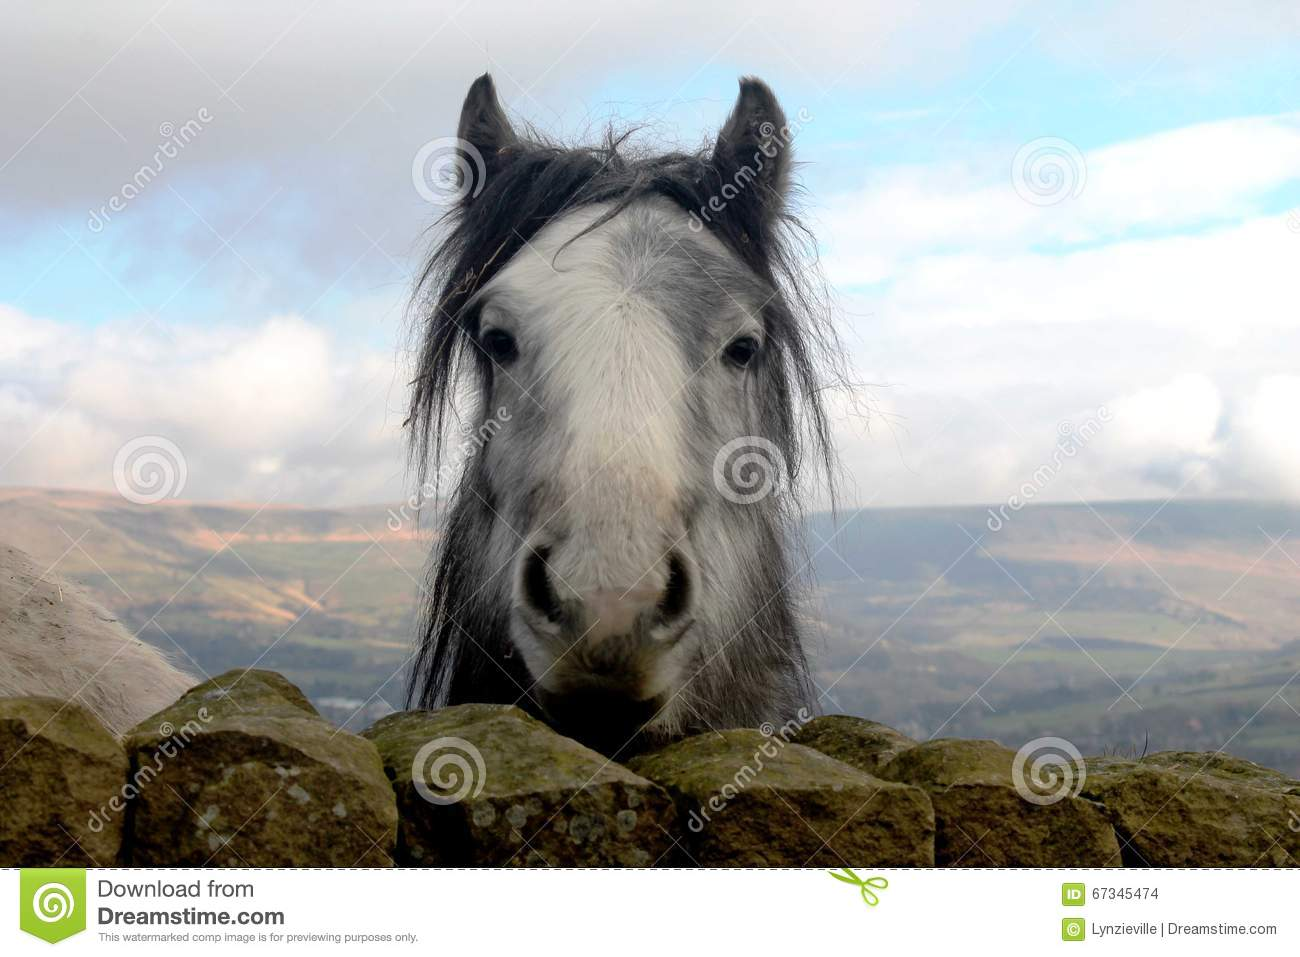 Curious horse in open fields looking directly at the camera.